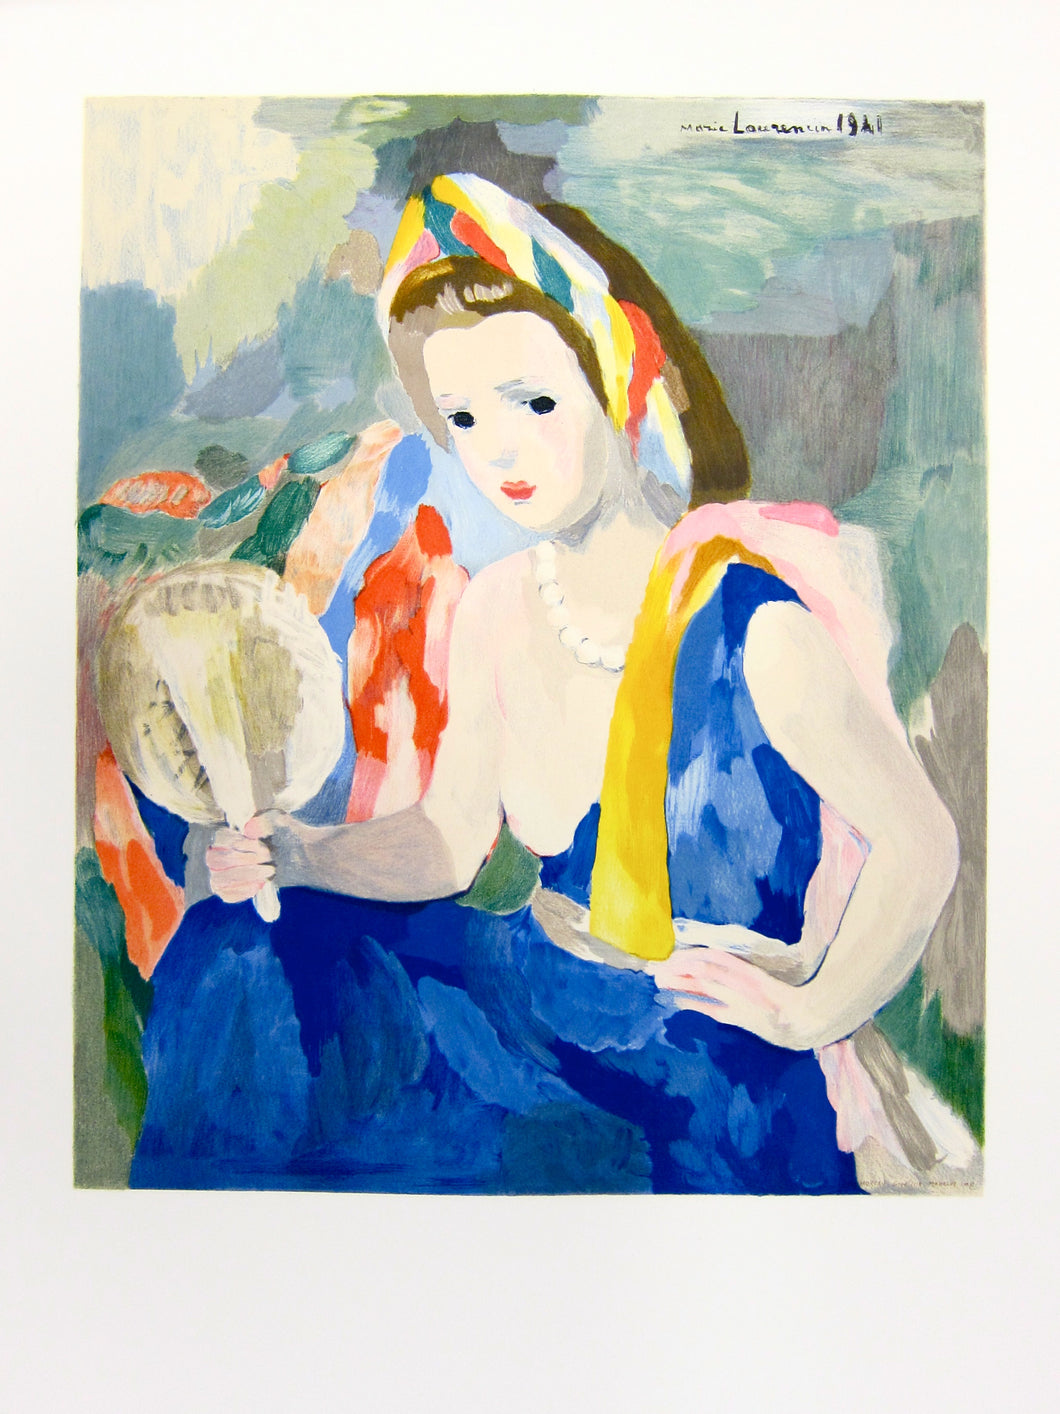 Woman Holding White Fan by Marie Laurencin 1991